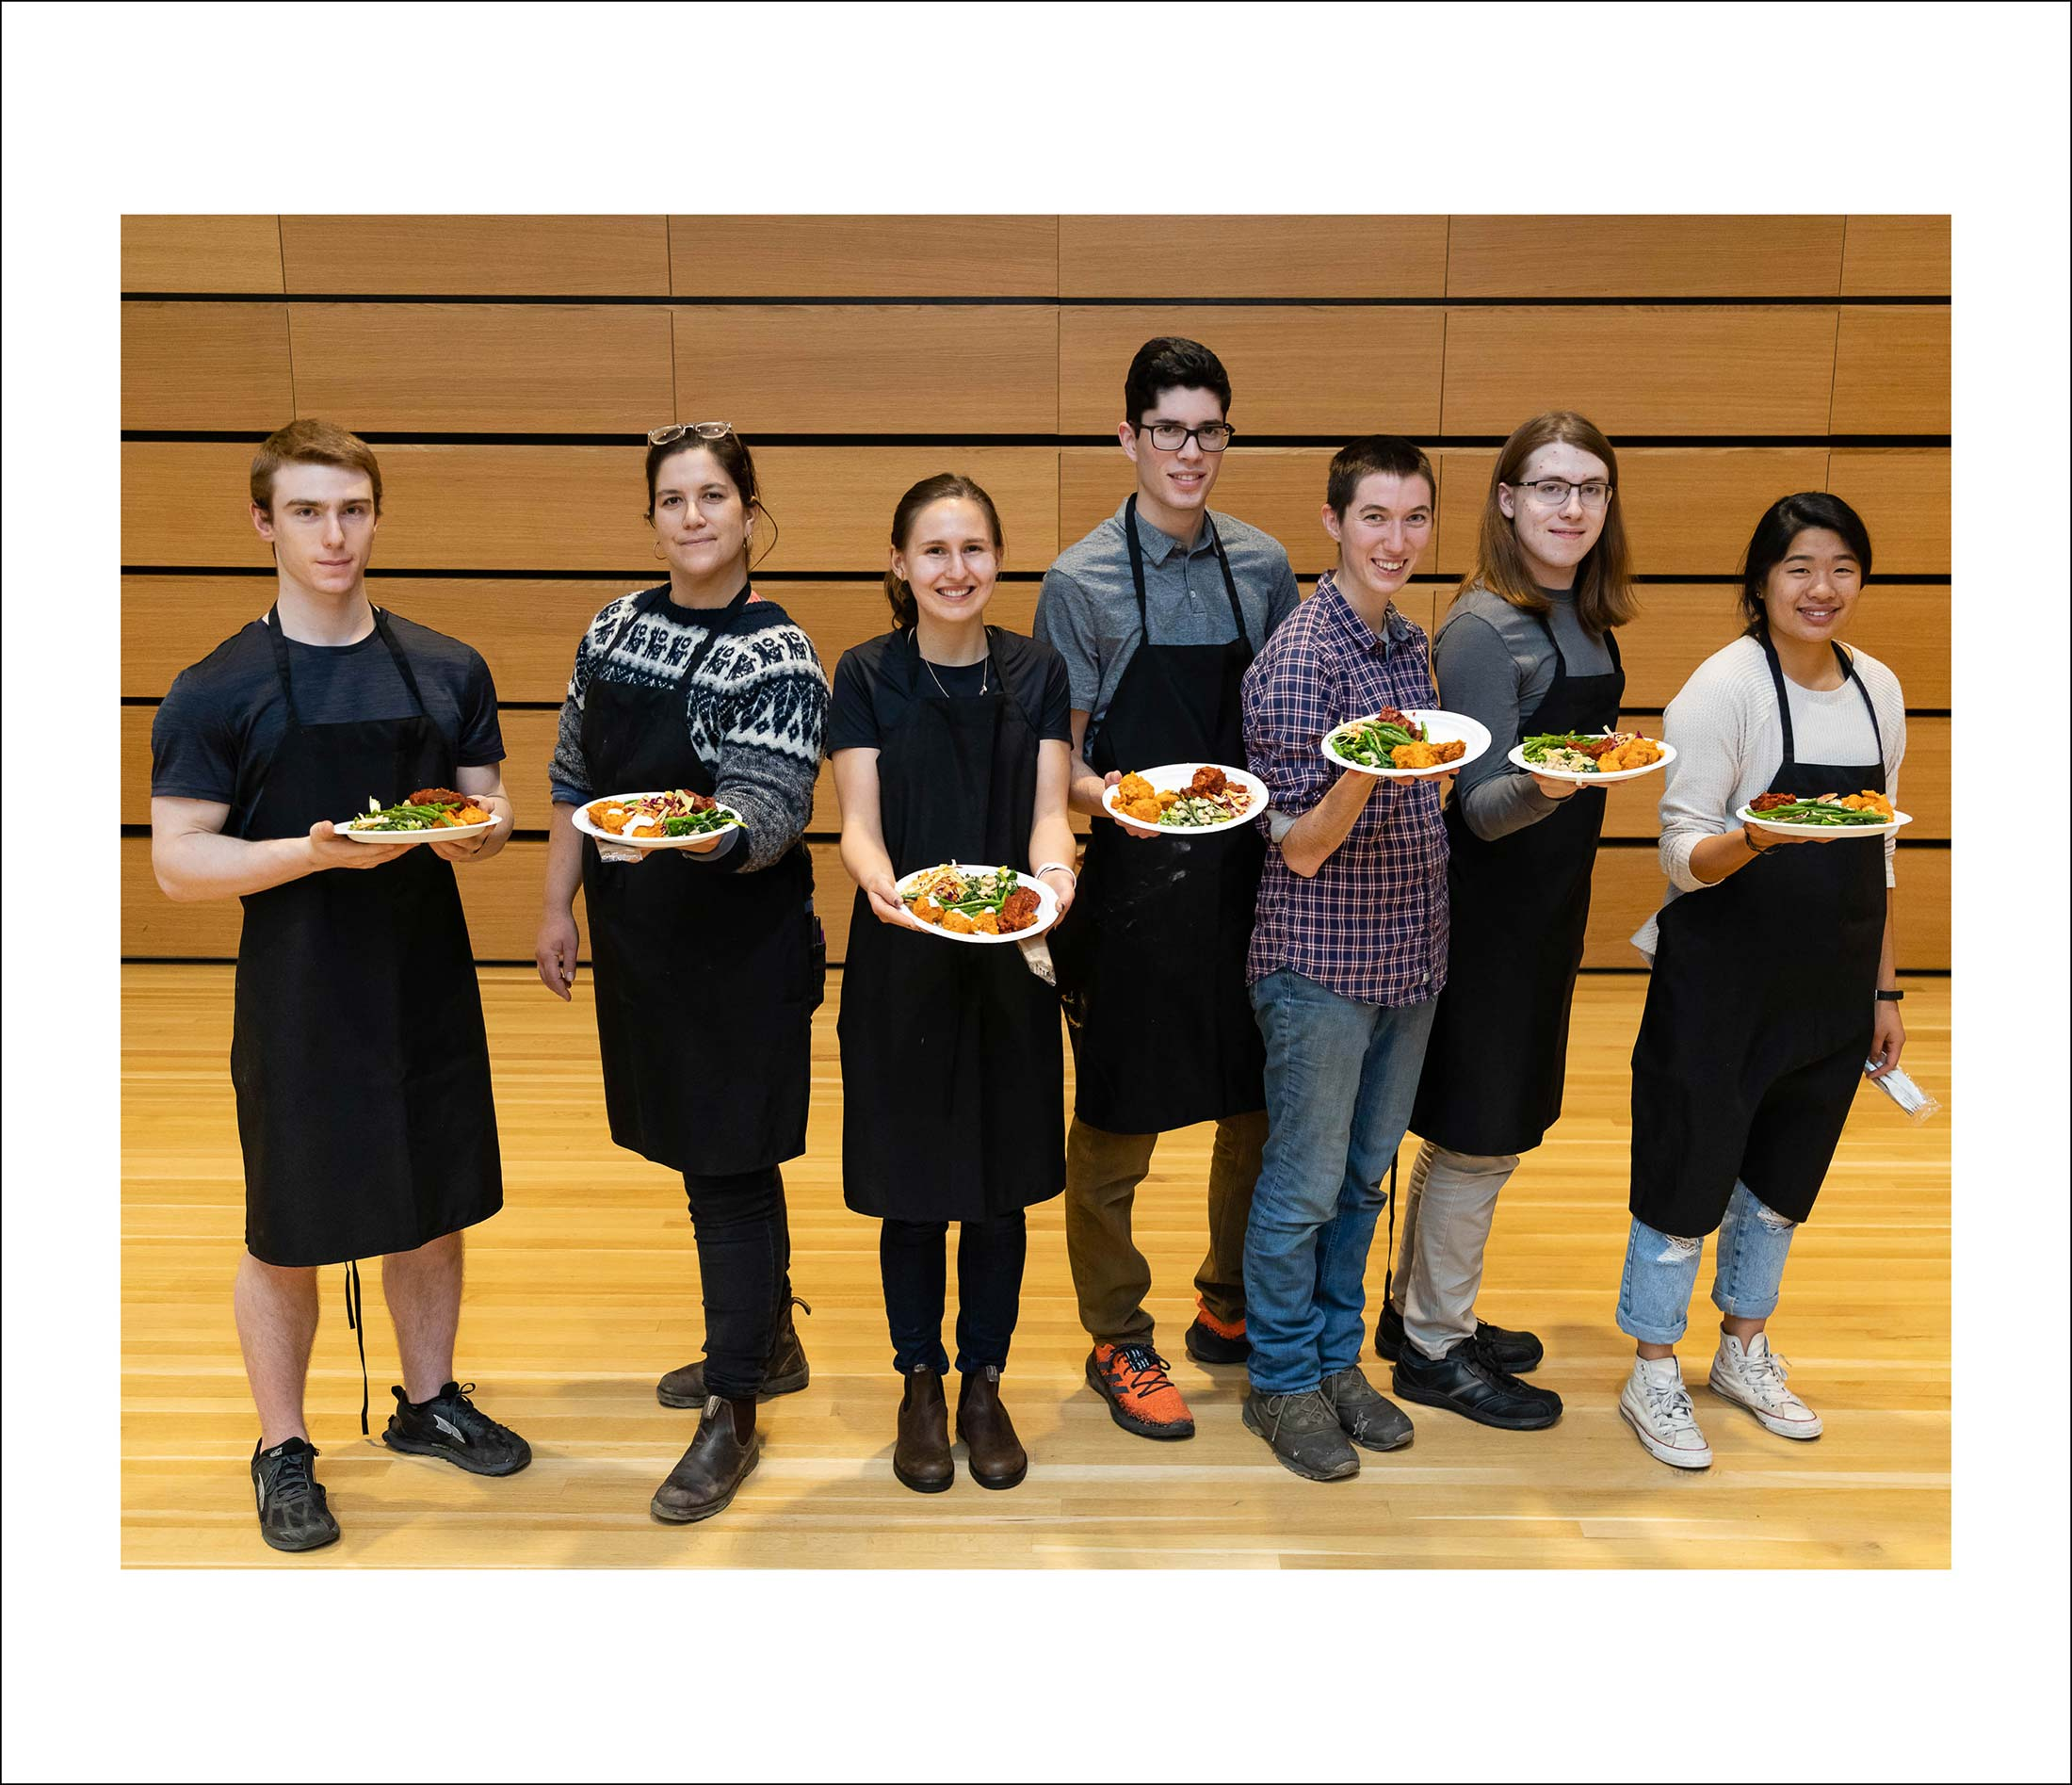 Seven people wearing black aprons, each holding a plateful of food